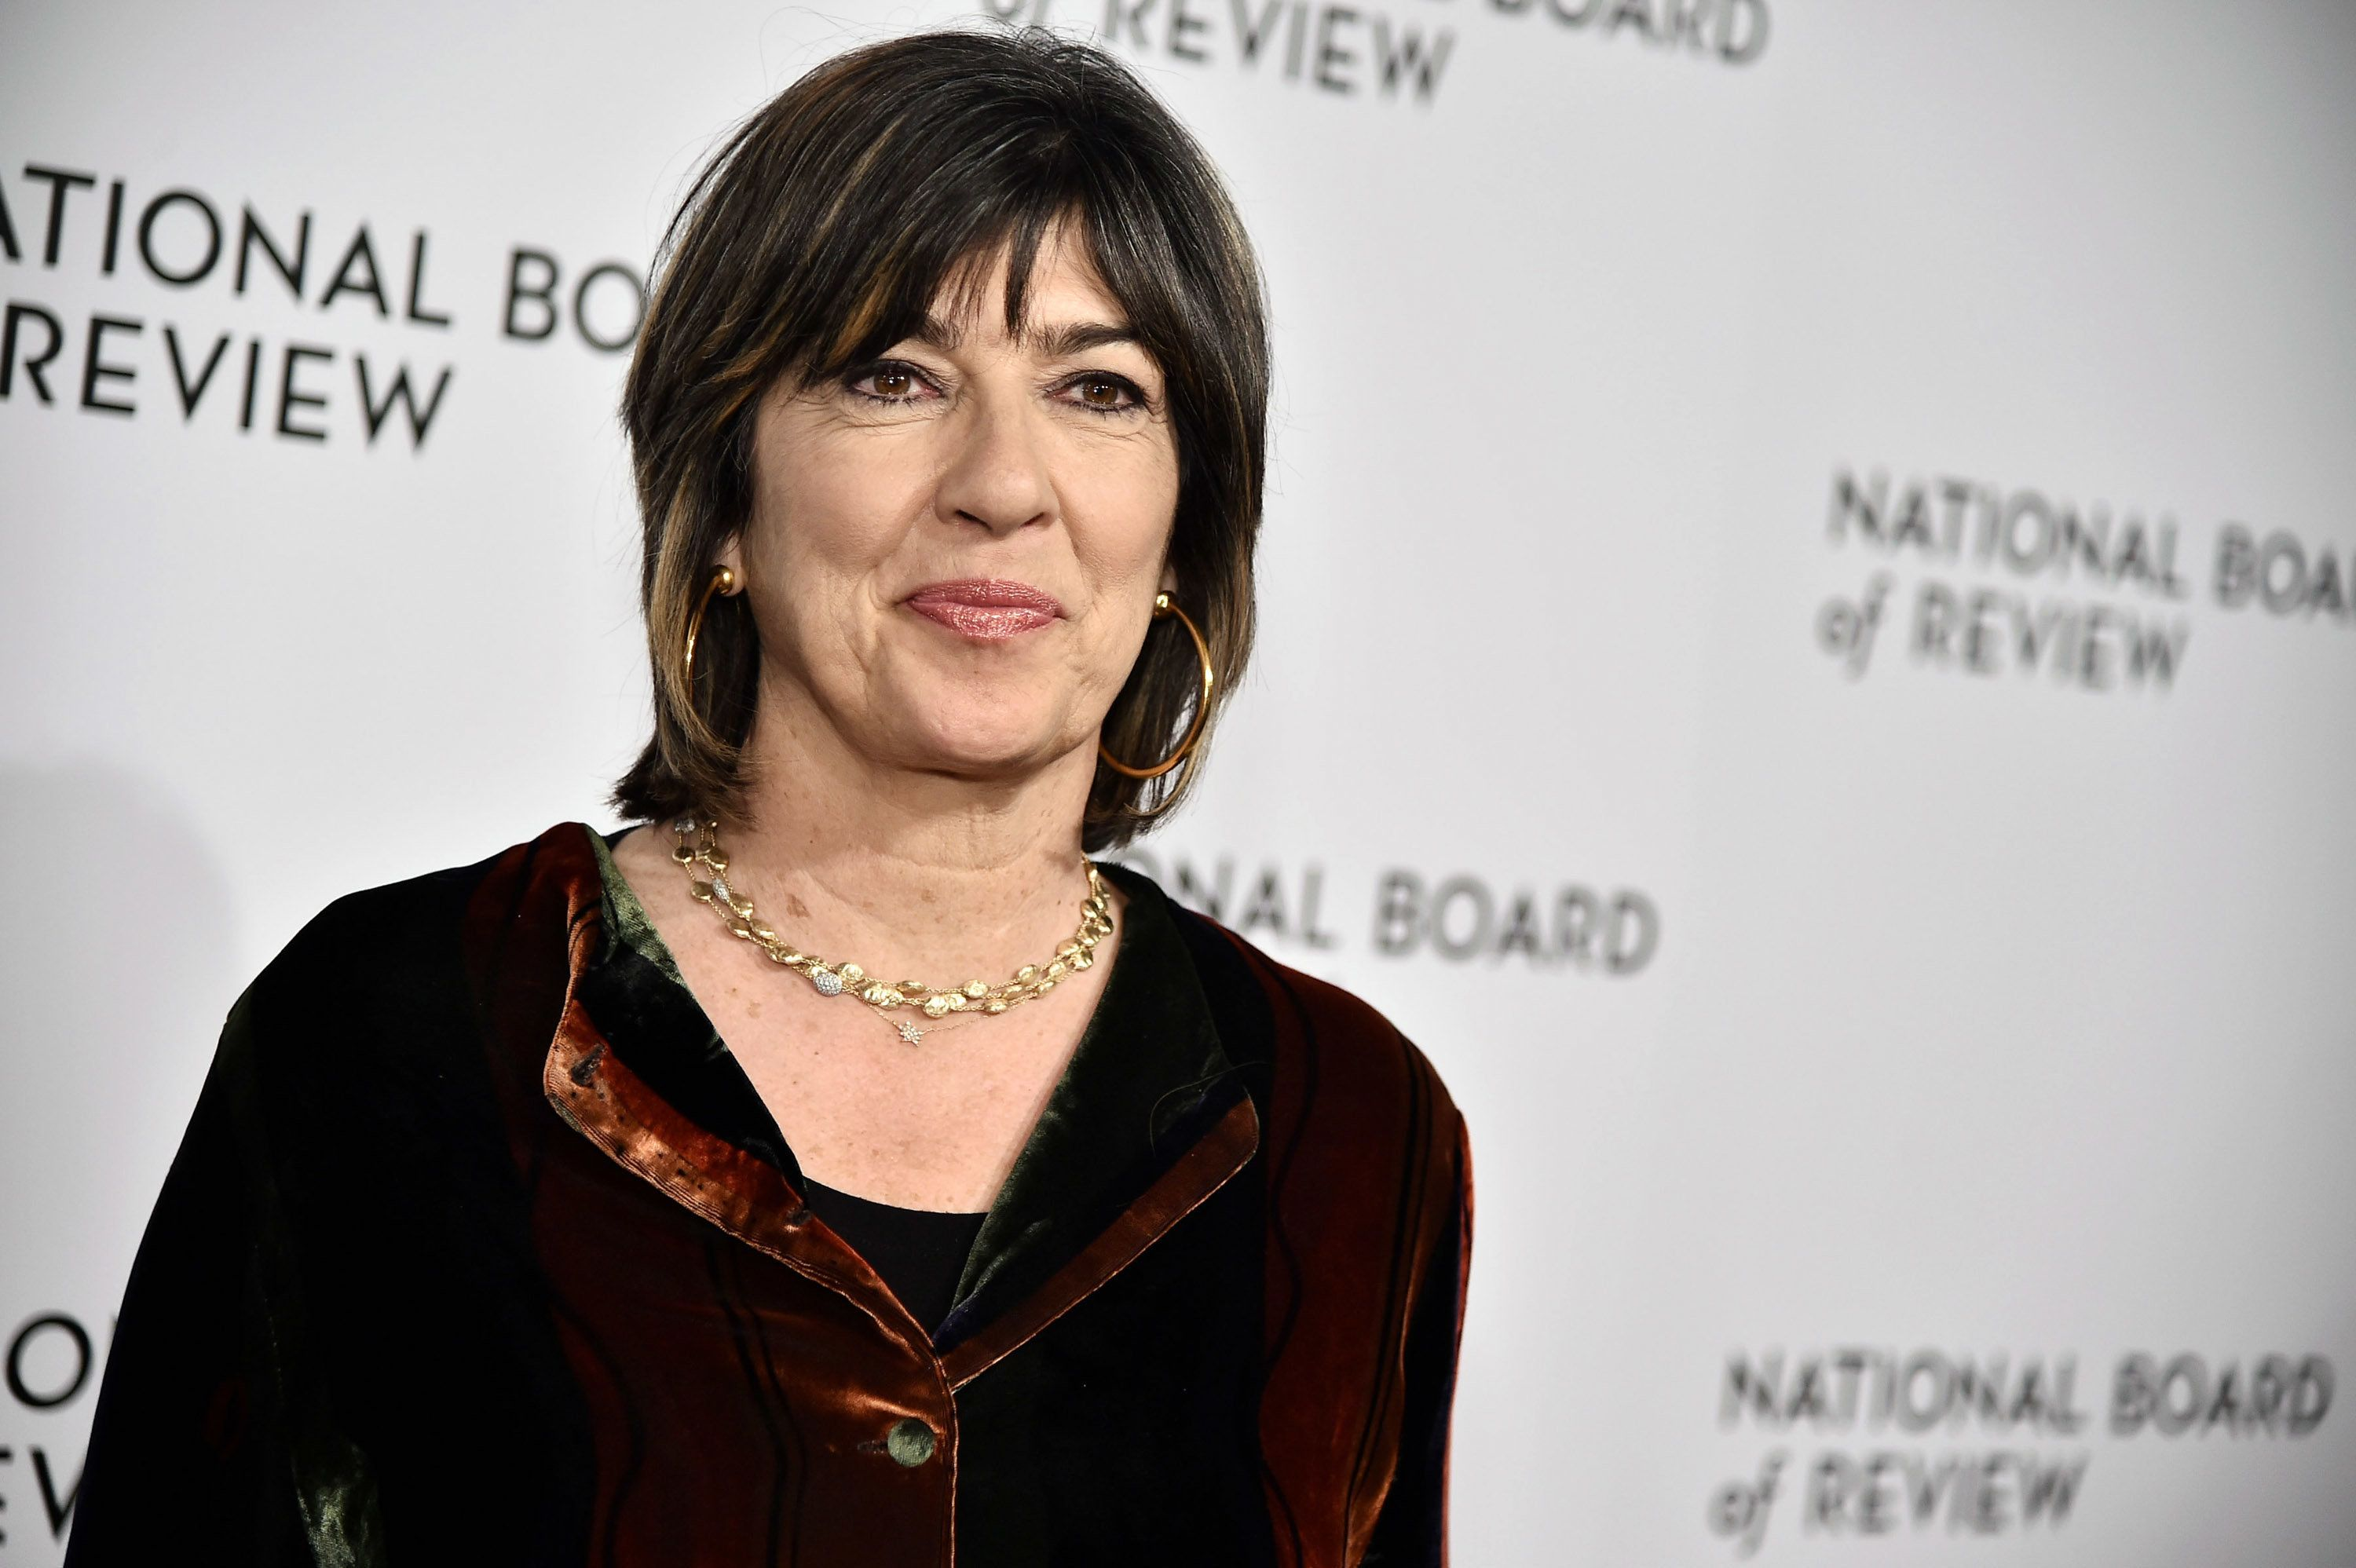 NEW YORK, NY - JANUARY 09:  Christiane Amanpour attends the 2018 The National Board Of Review Annual Awards Gala at Cipriani 42nd Street on January 9, 2018 in New York City.  (Photo by Steven Ferdman/Patrick McMullan via Getty Images)